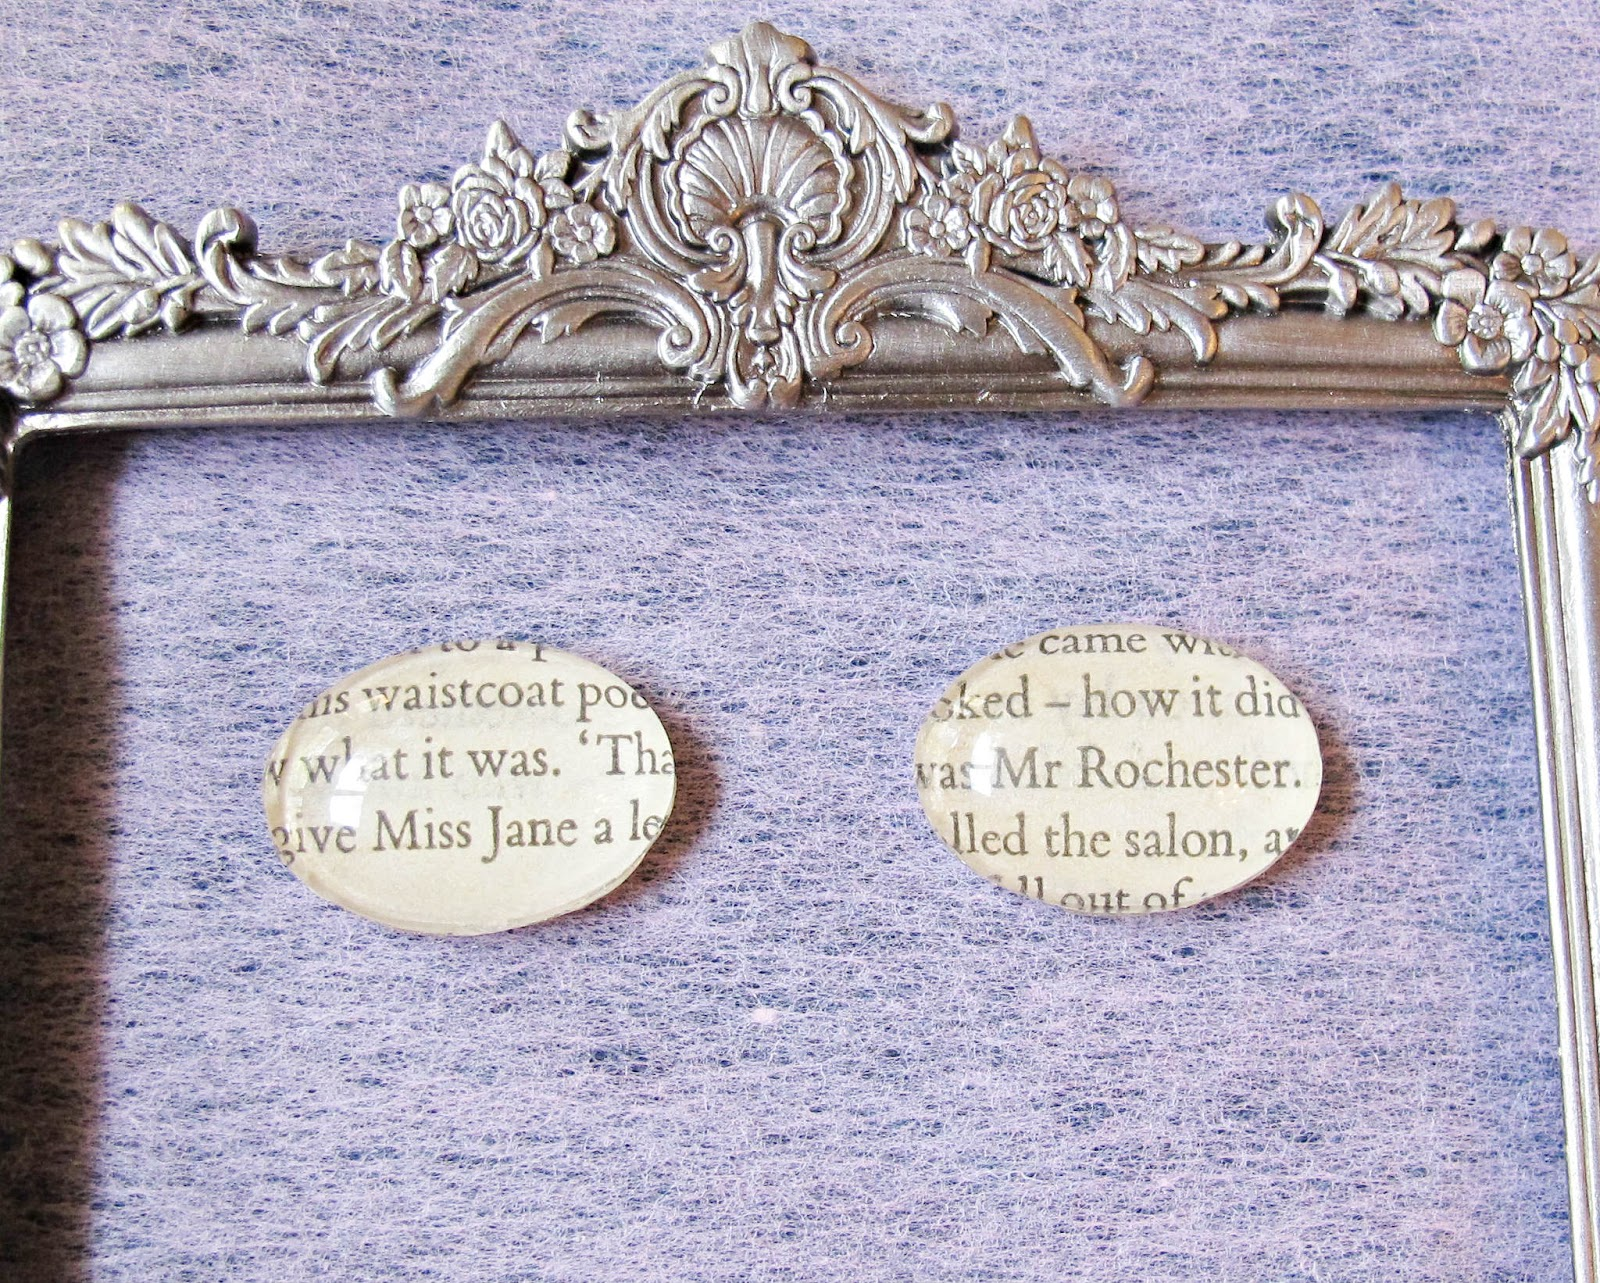 image glass magnets jane eyre mr rochester domum vindemia charlotte bronte upcycled